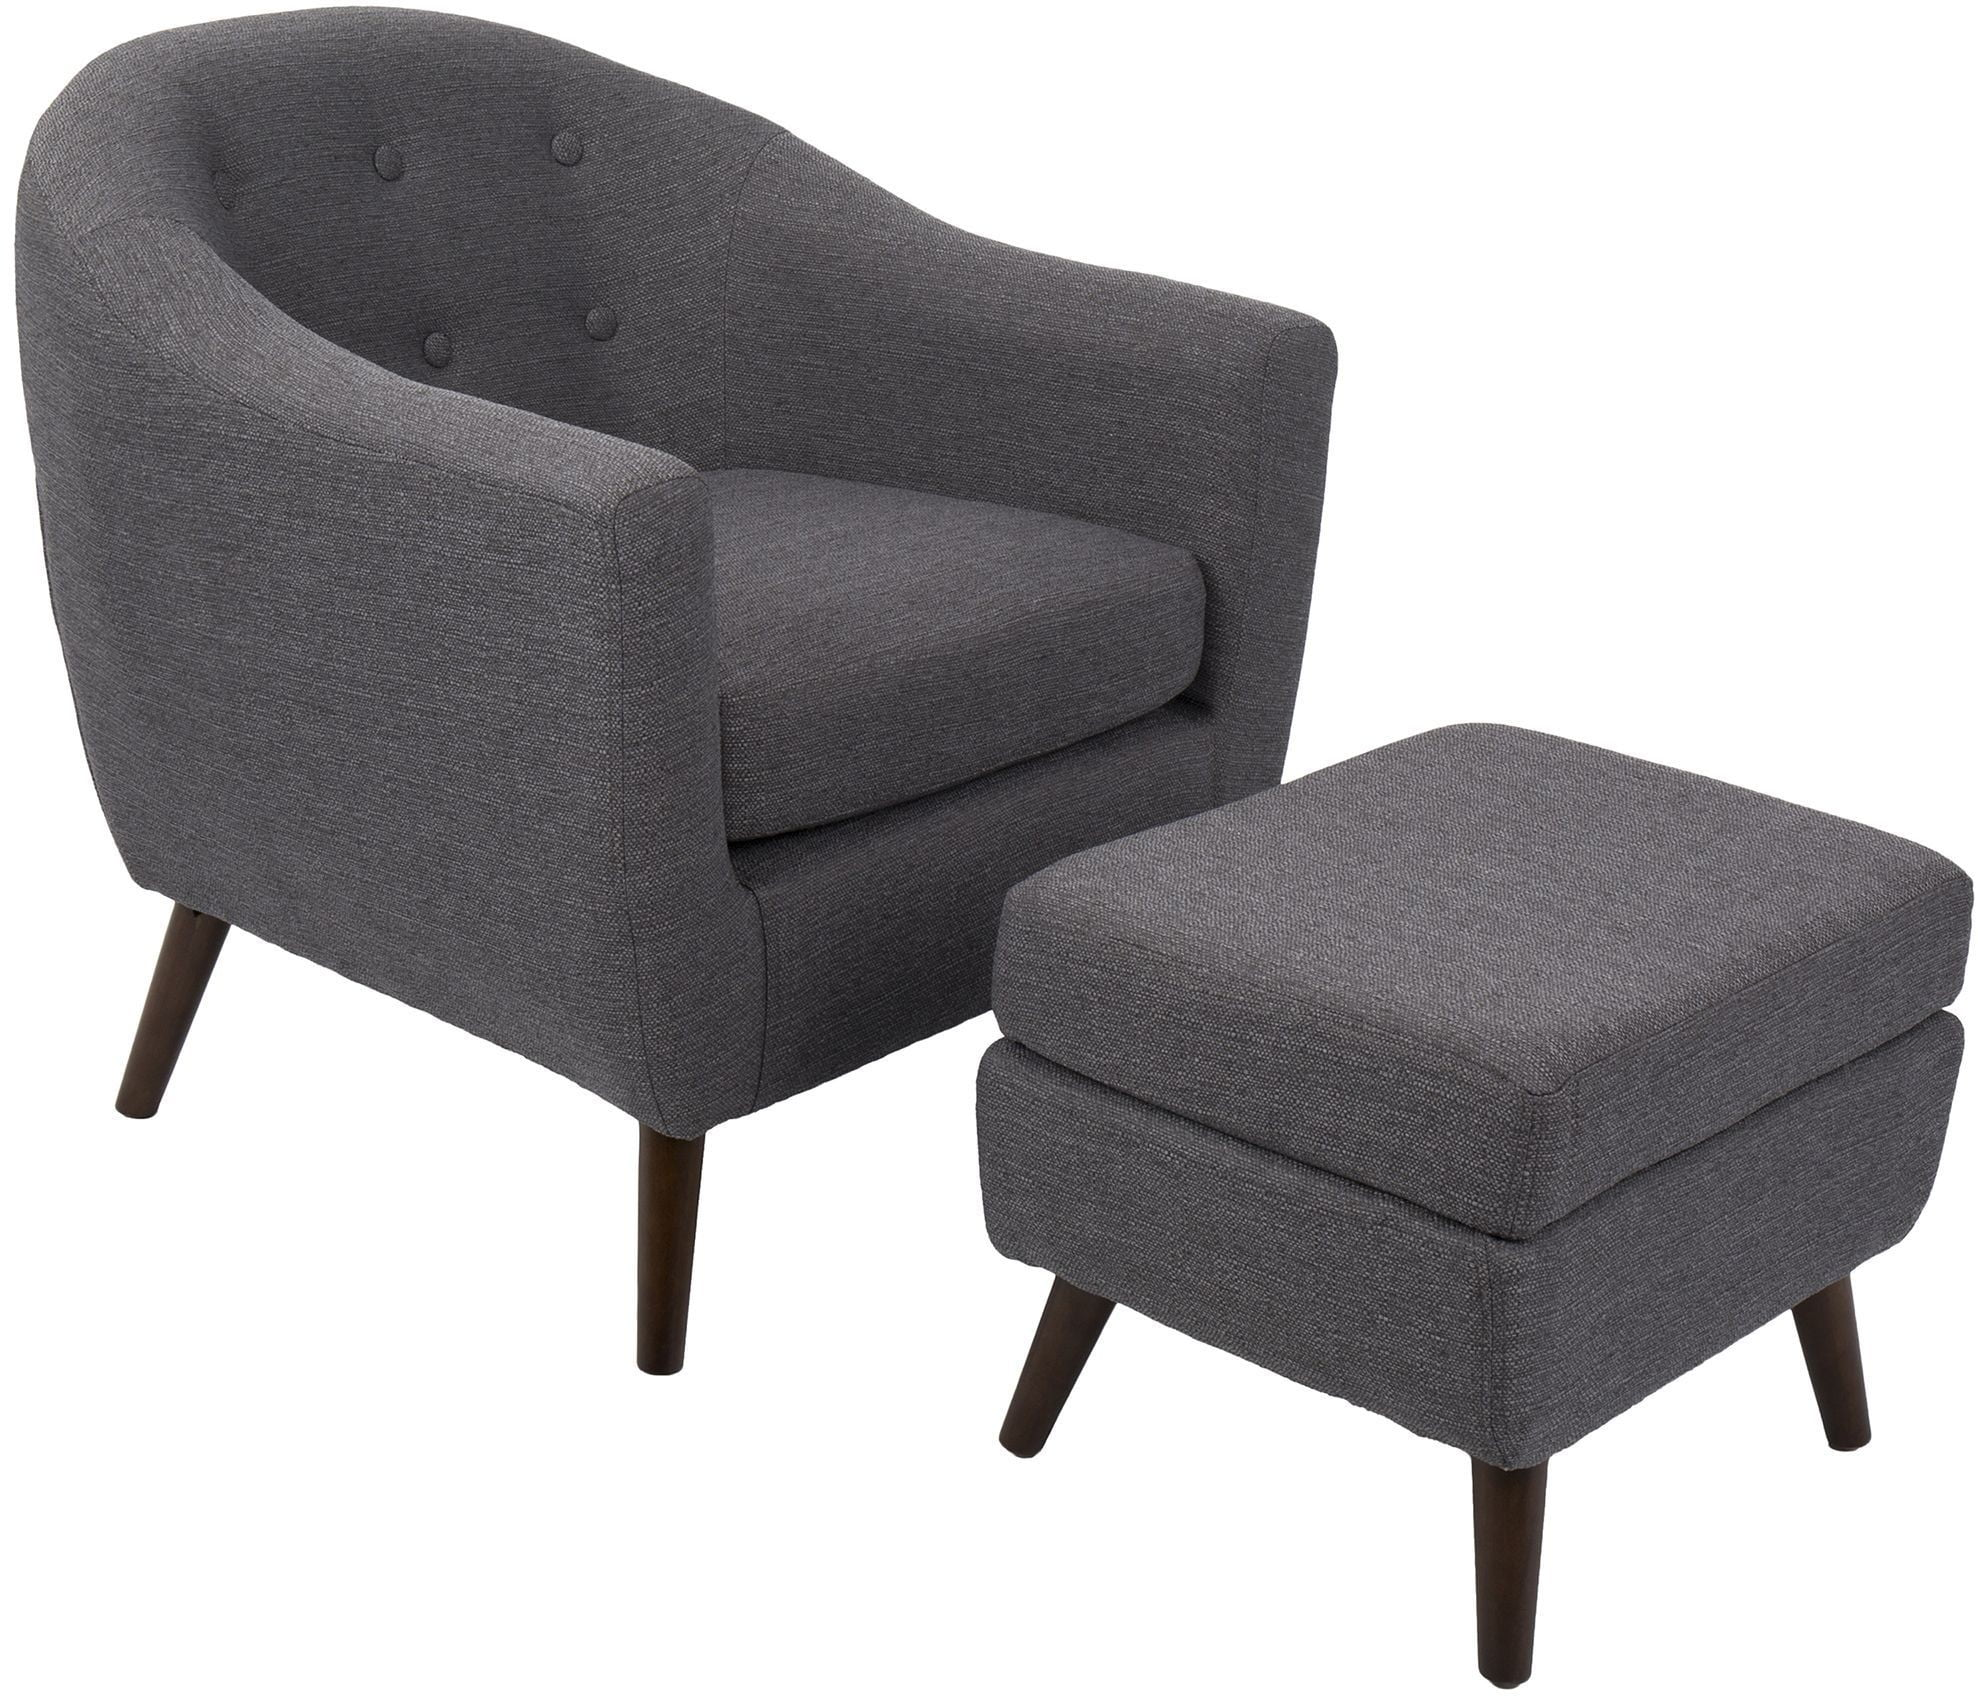 gray accent chair with ottoman soft bean bag chairs rockwell charcoal and from lumisource